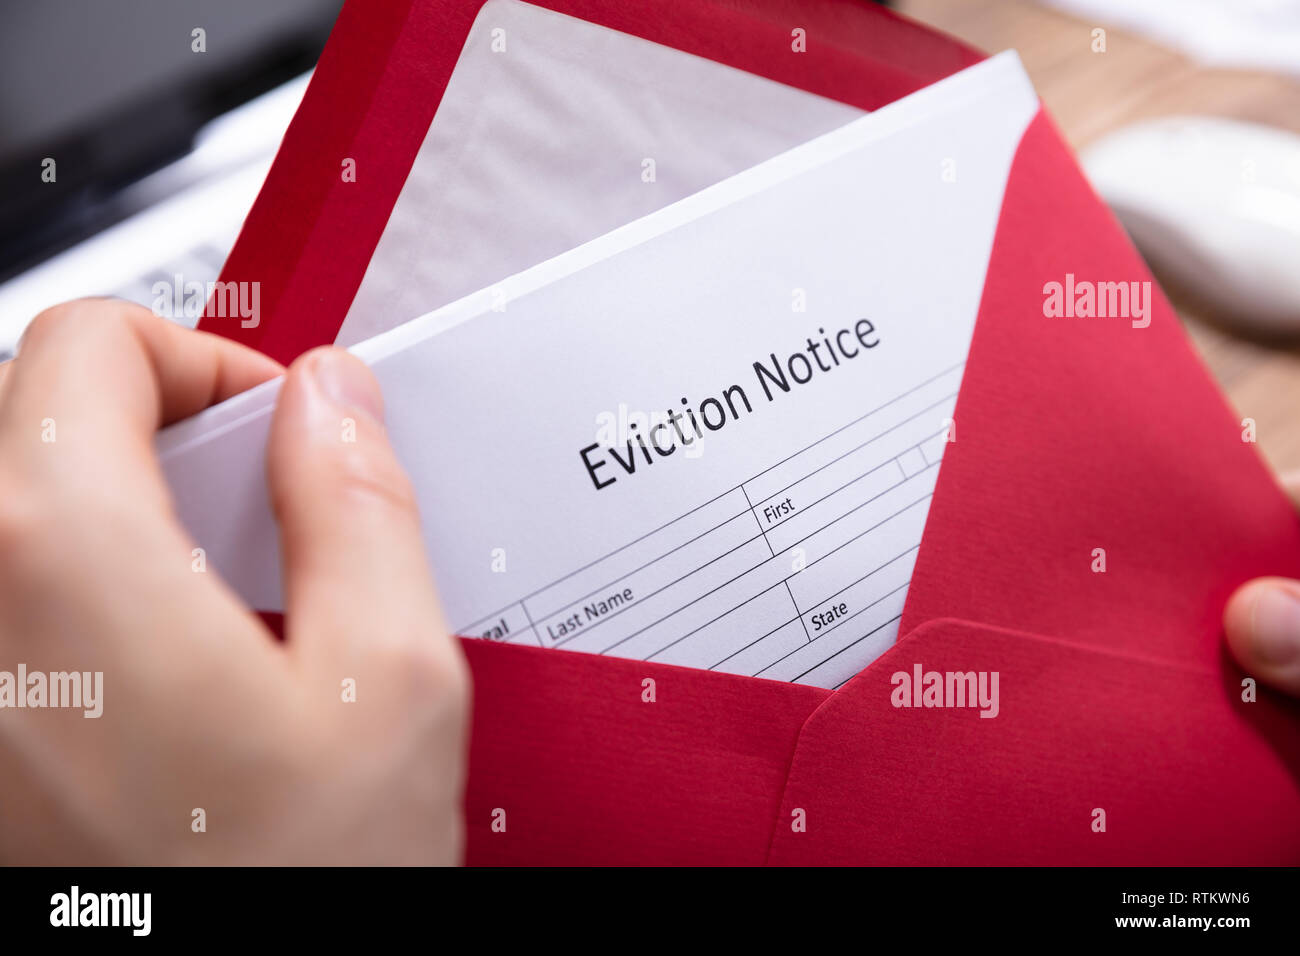 Close-up Of A Person's Hand Holding Eviction Notice In Red Envelope - Stock Image